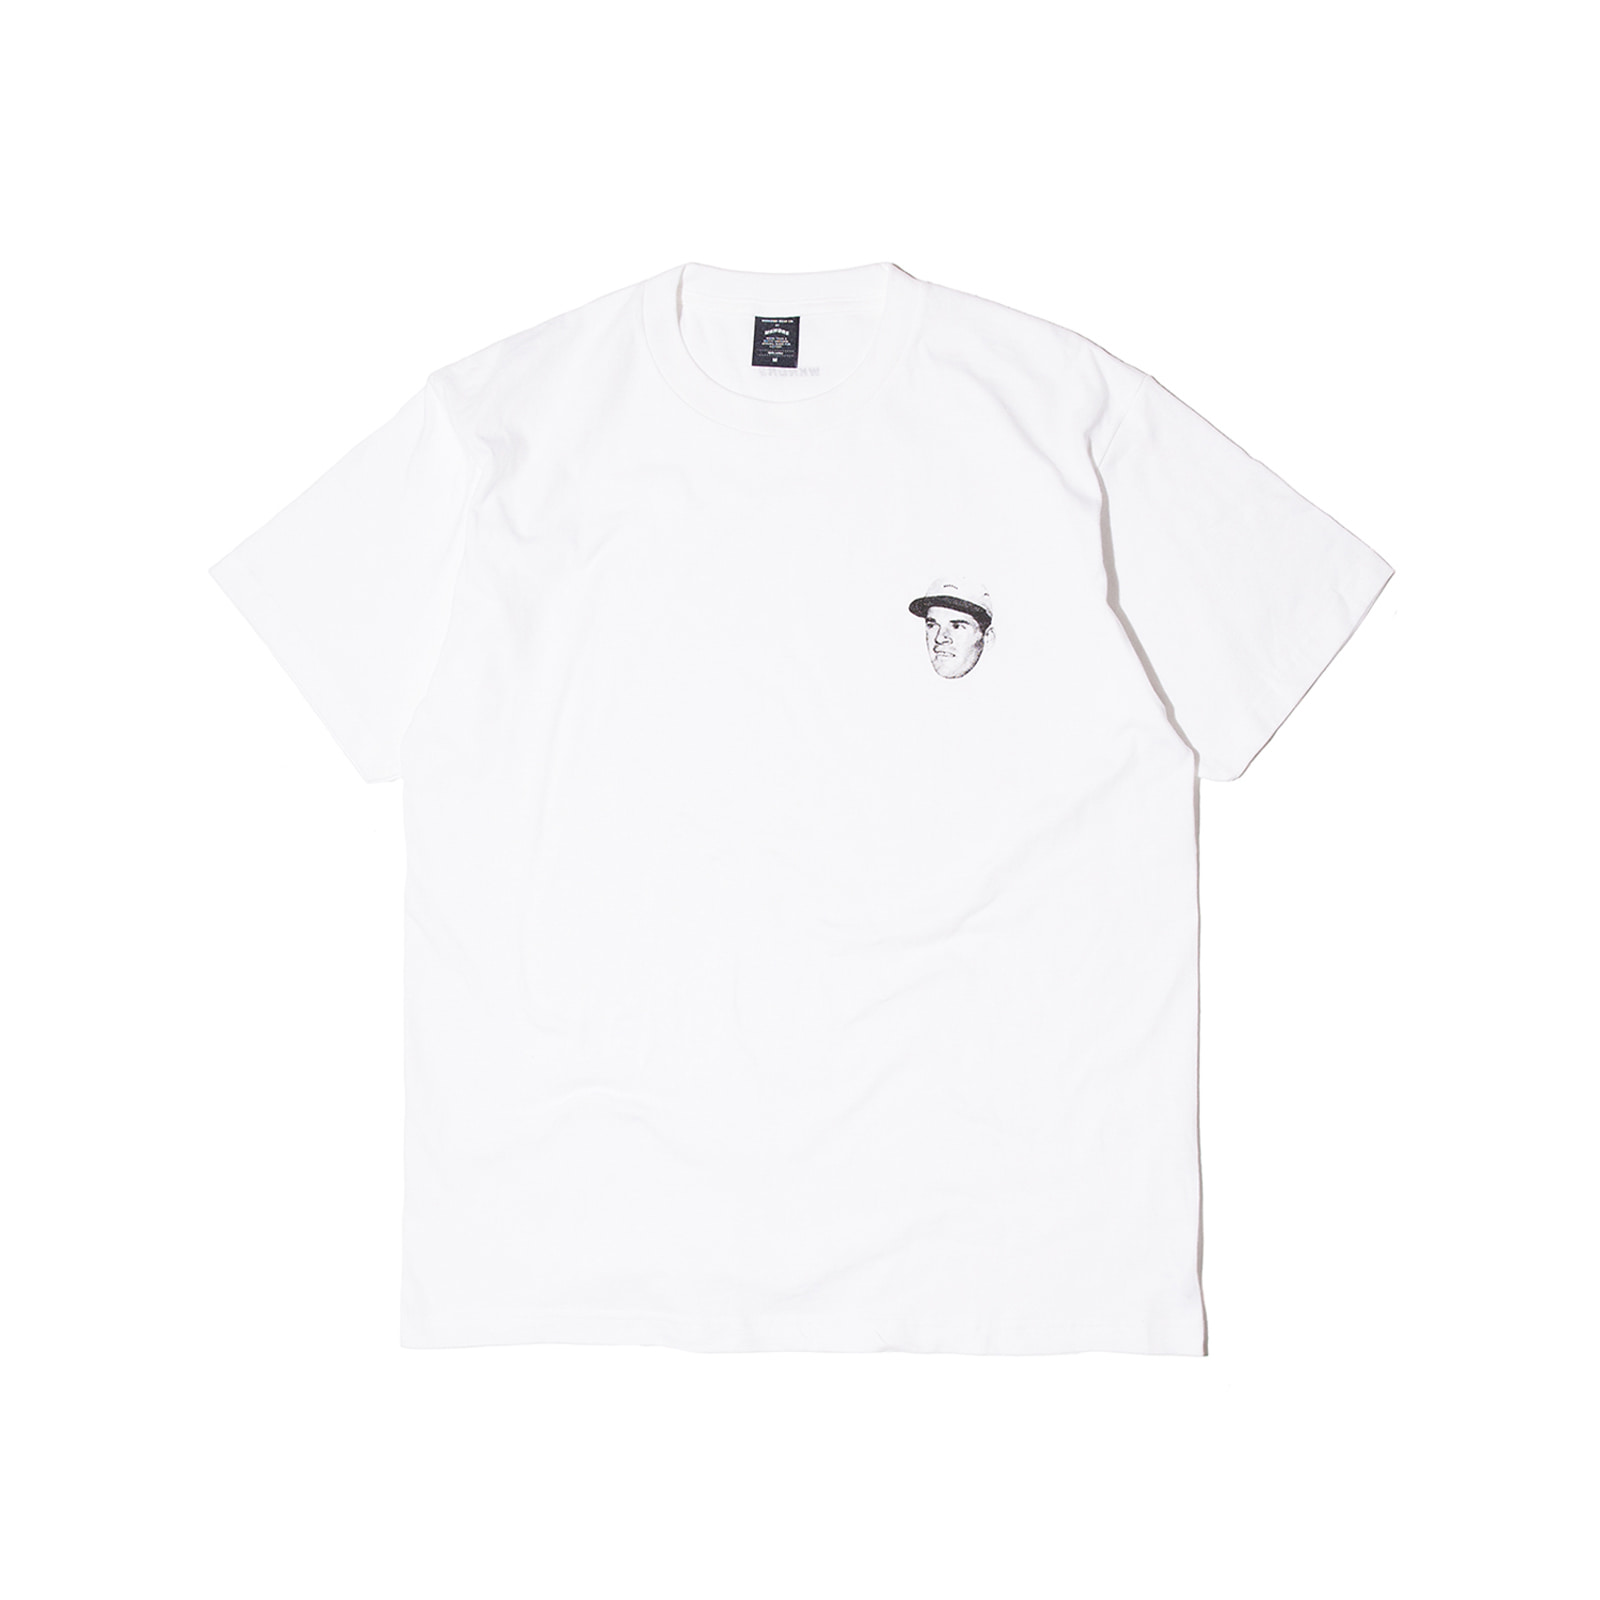 PLAYER TEE (WHITE)